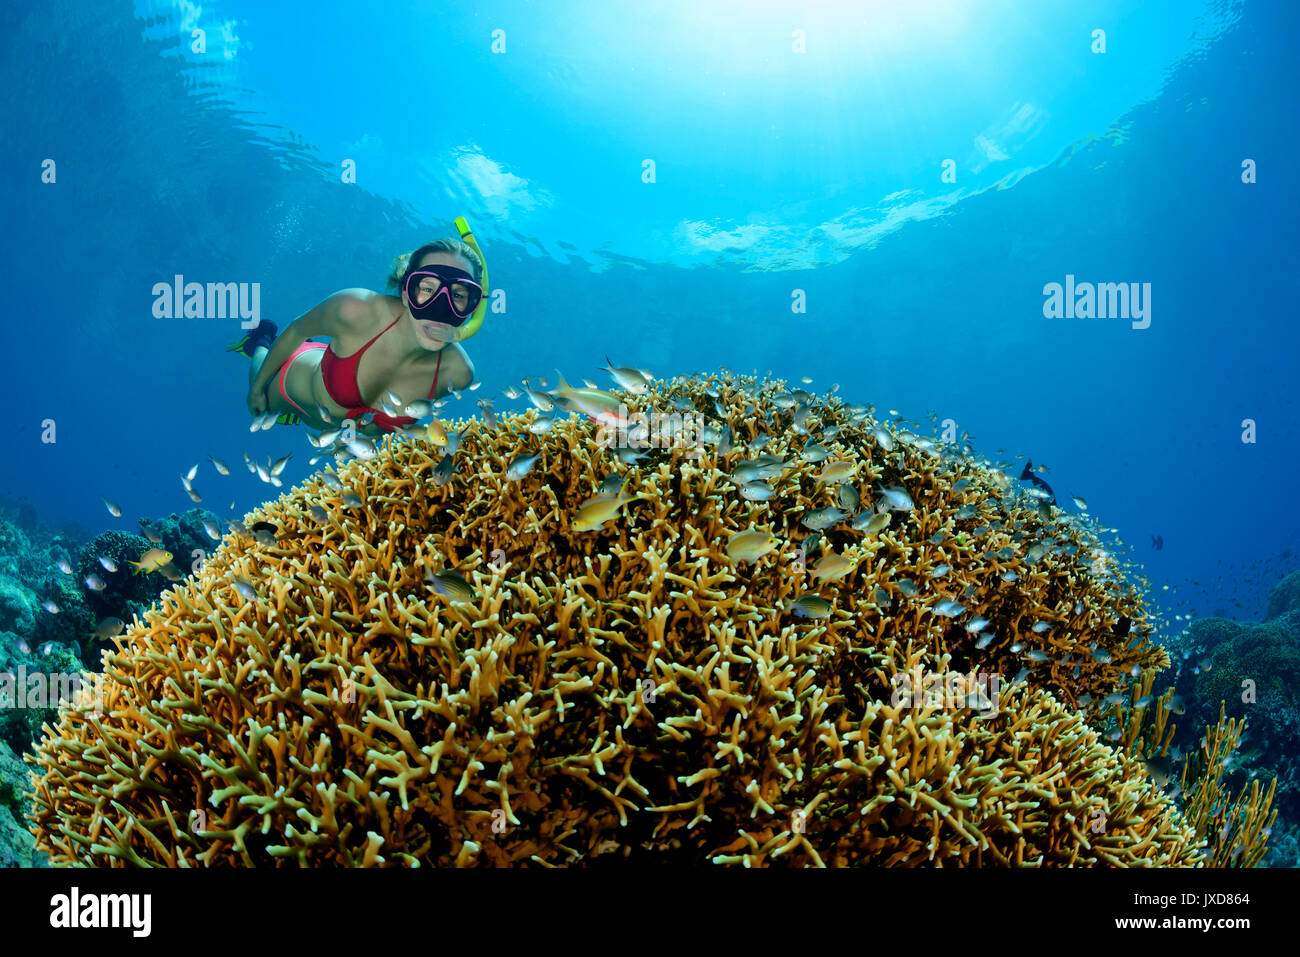 Young woman snorkeling in Coralreef with near fire corals, Selayar Island, Indonesia, Indian Ocean - Stock Image